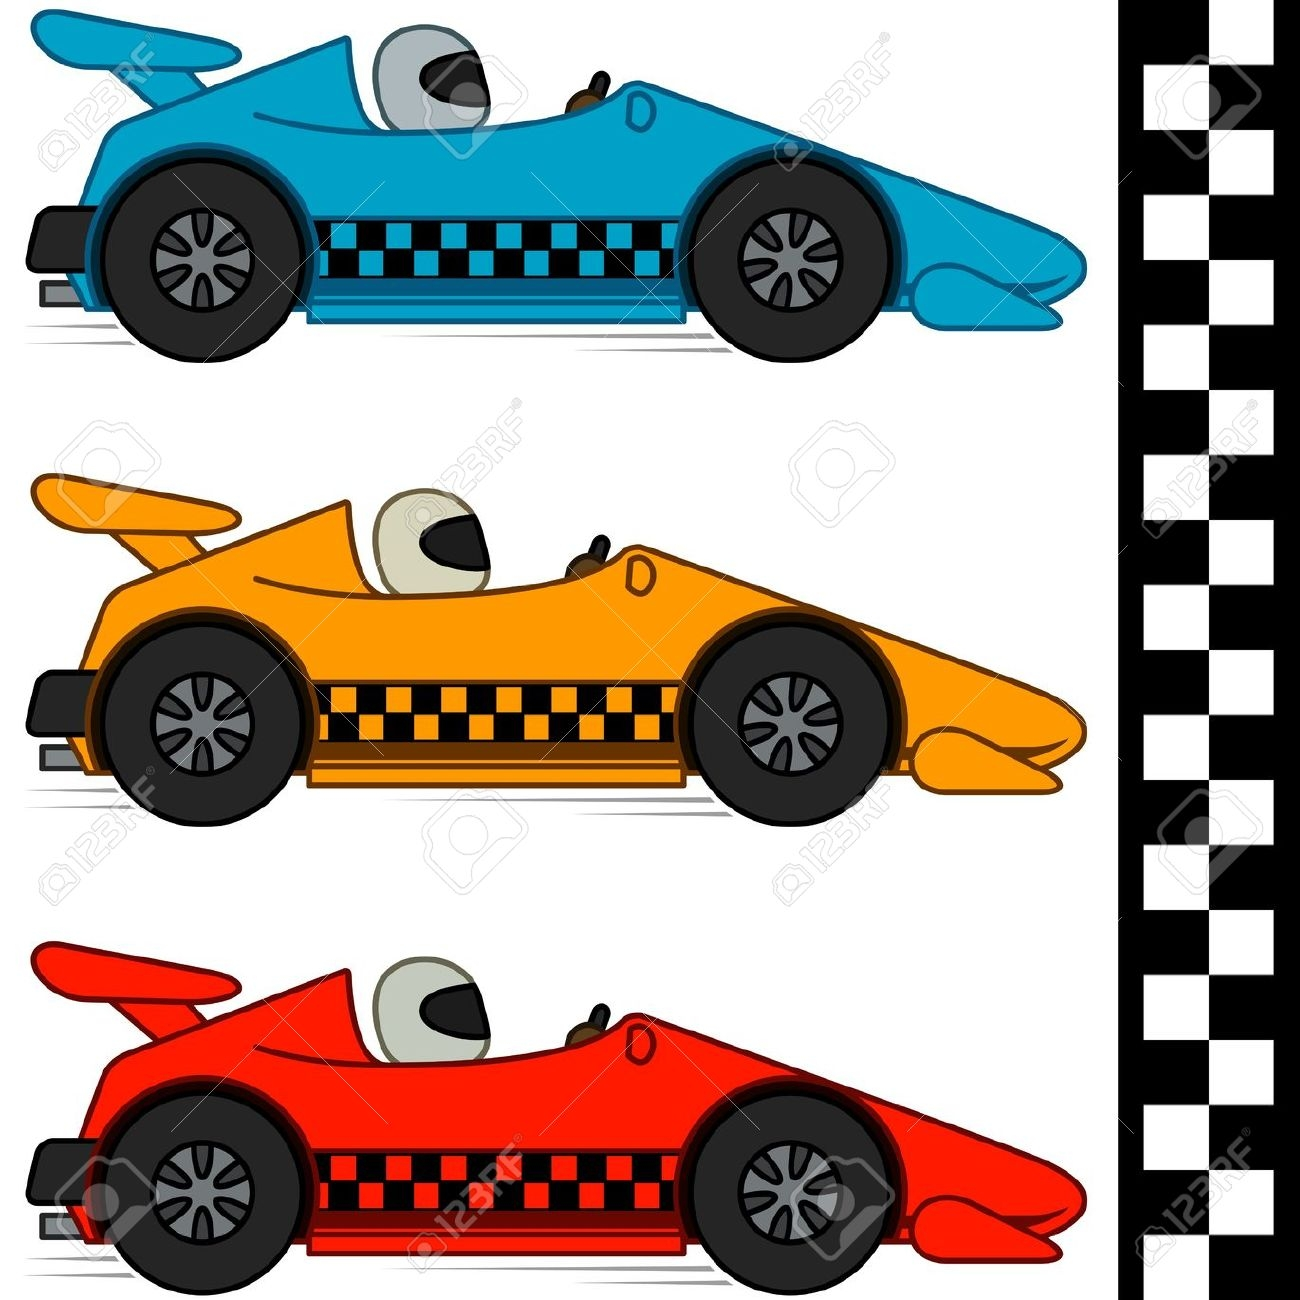 Stock car racing clipart.